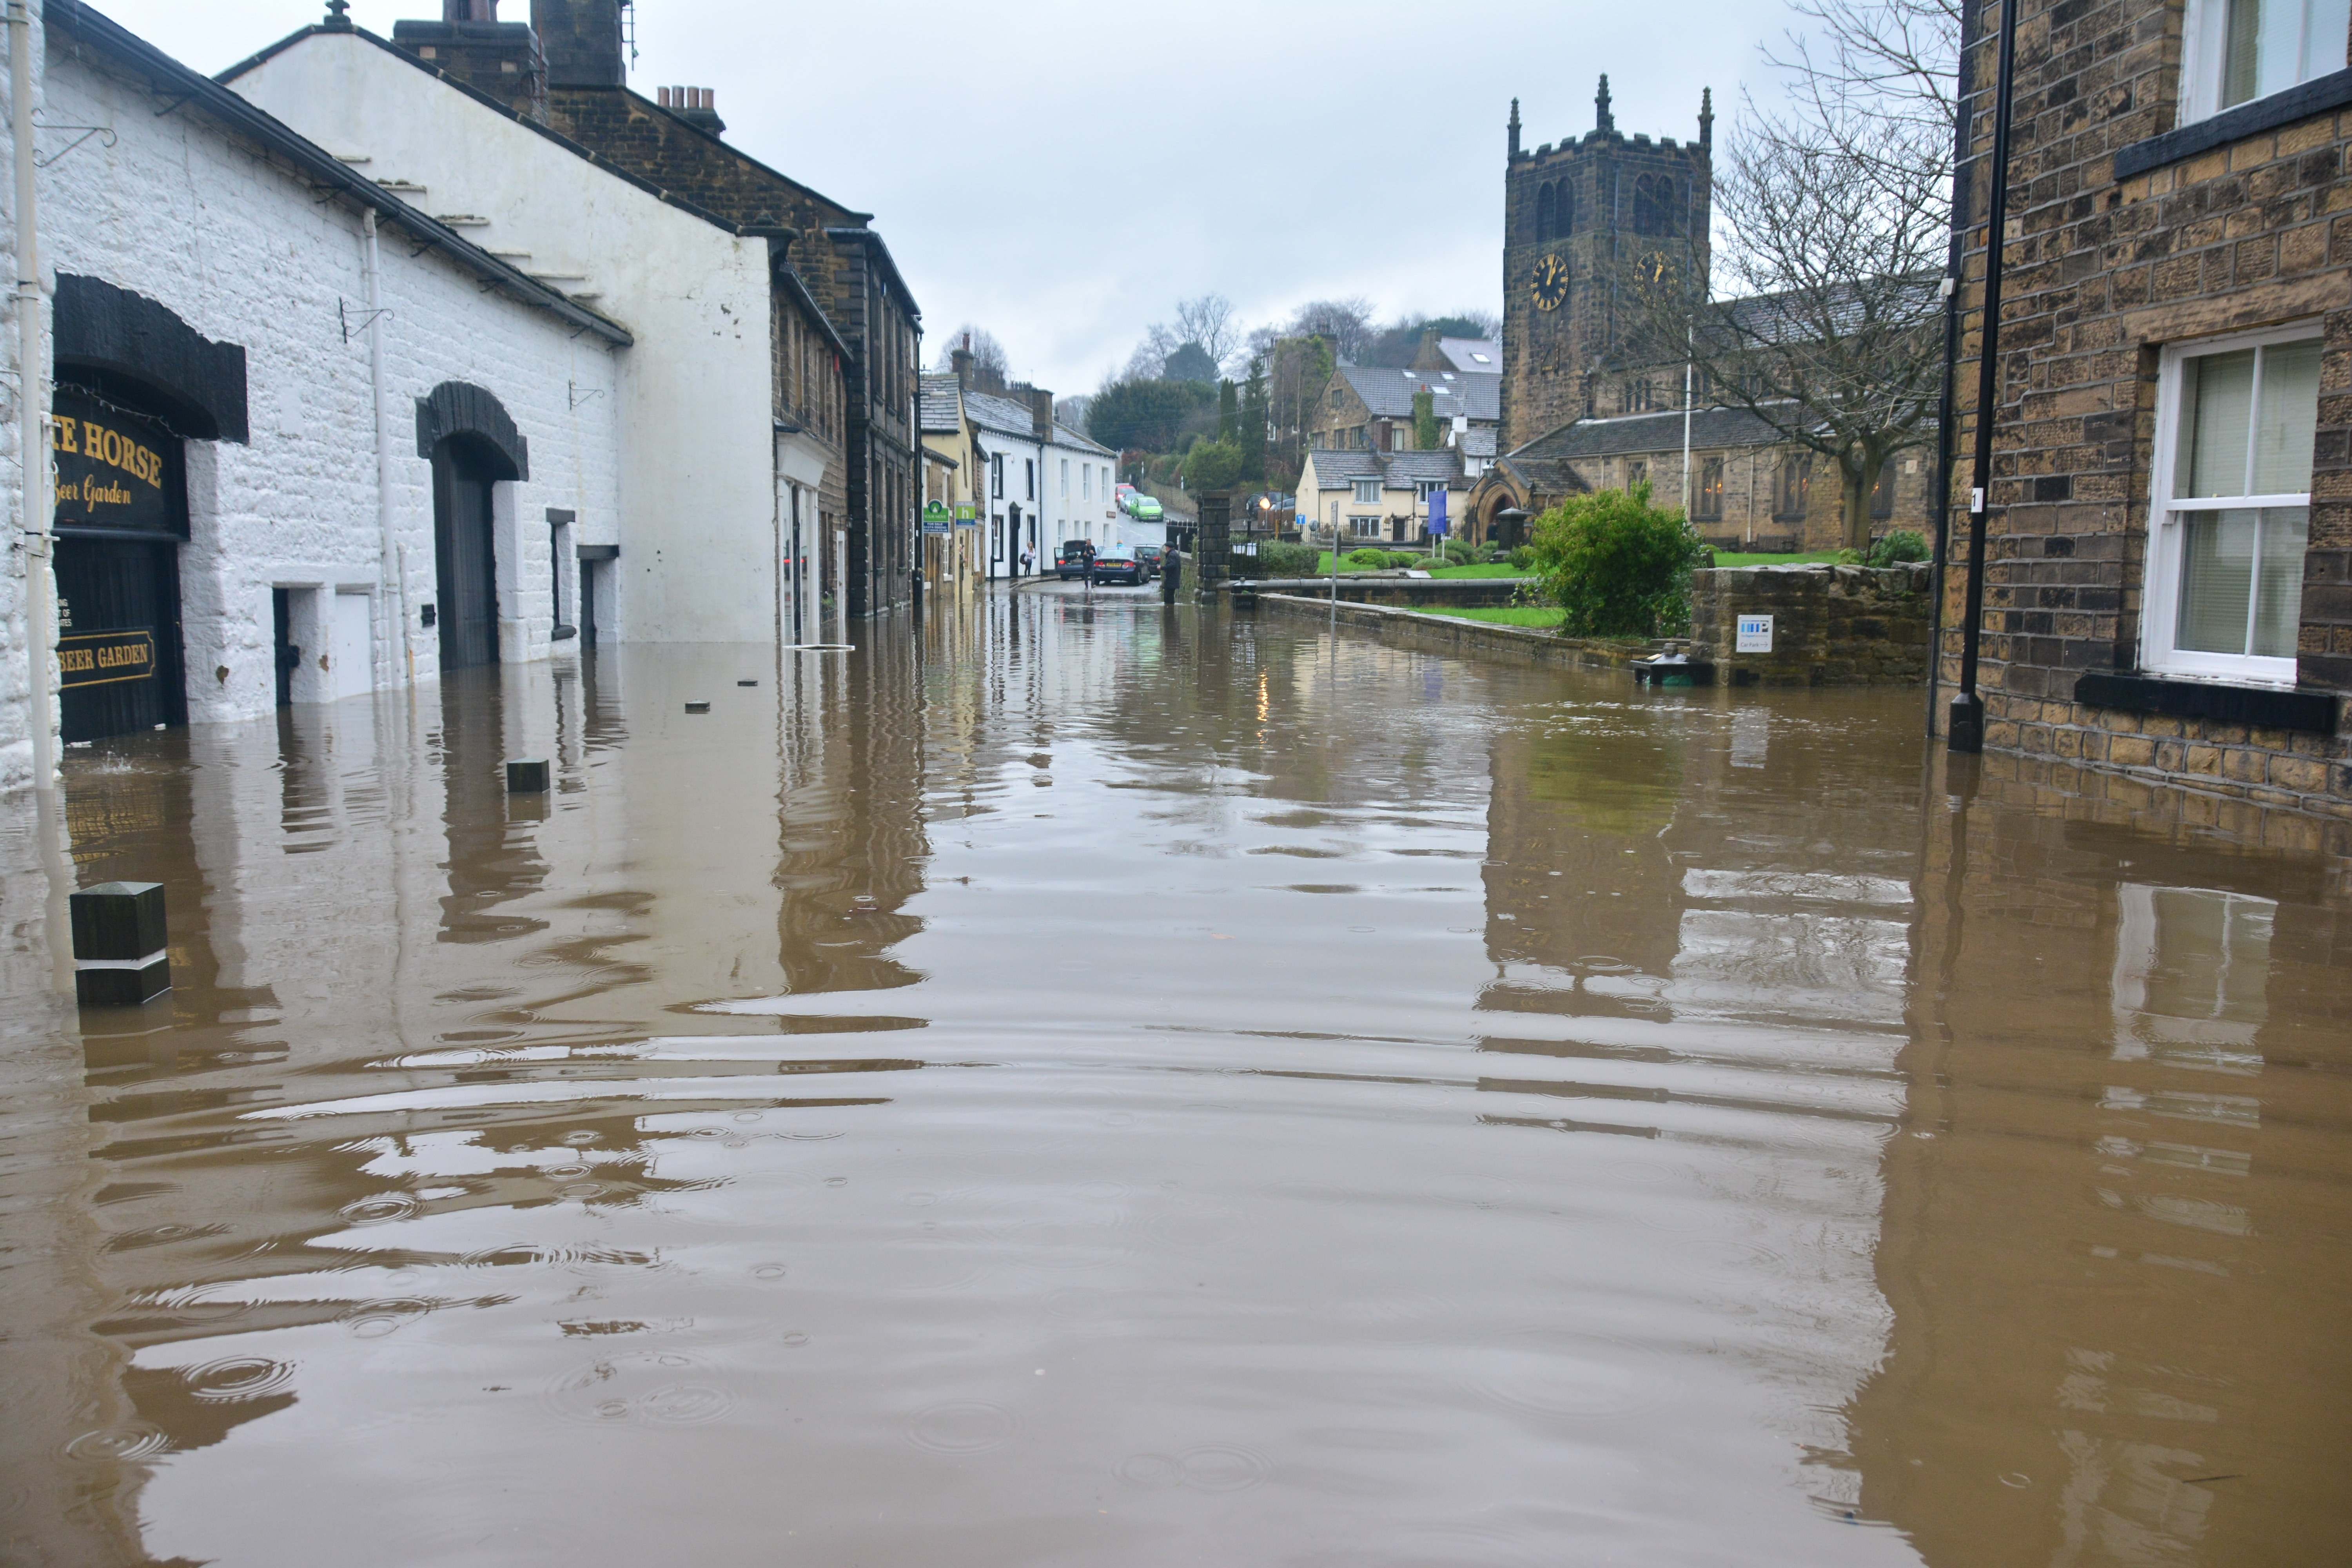 Flooded village street with church at end